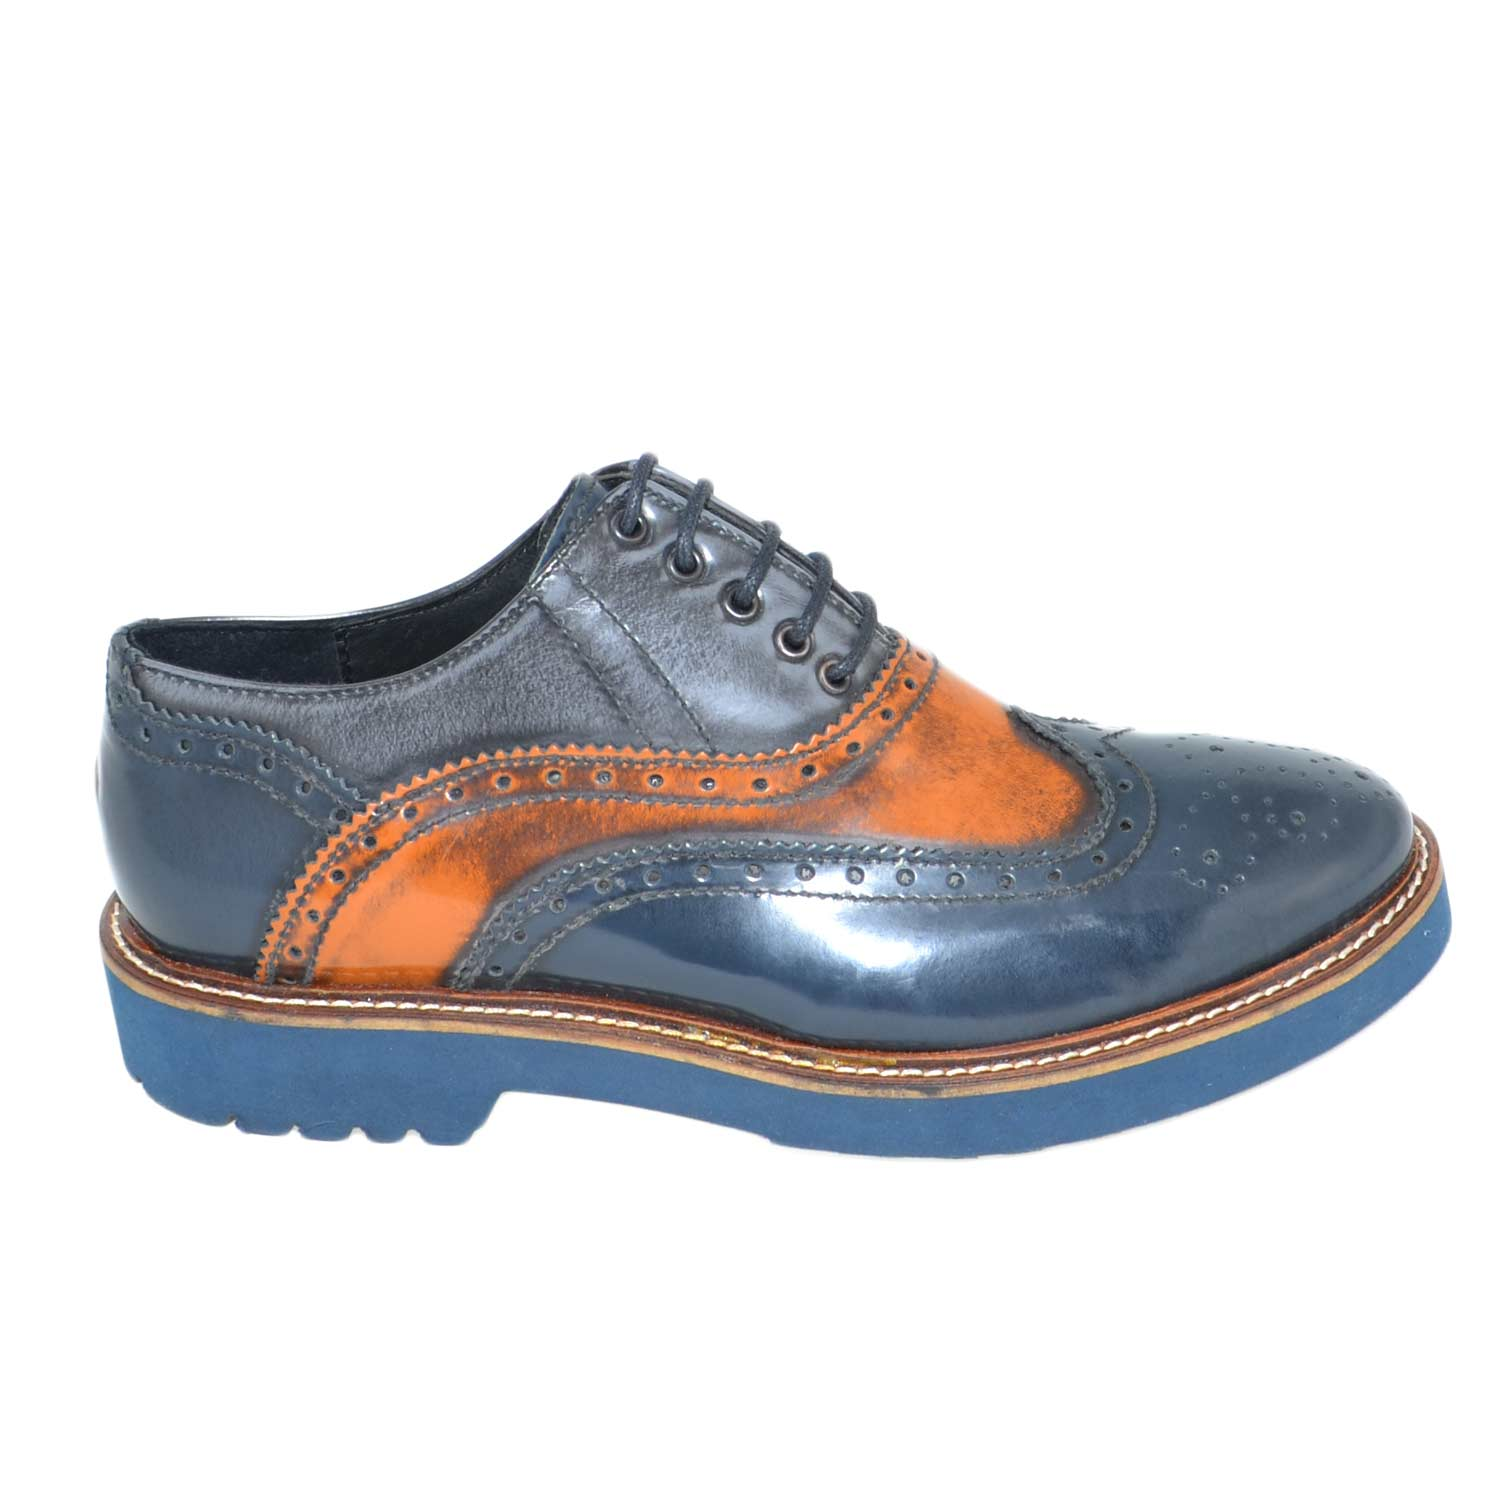 Calzature donna art.fr107 stringate bicolore blu ed arancione f.do micro ultraleggero .